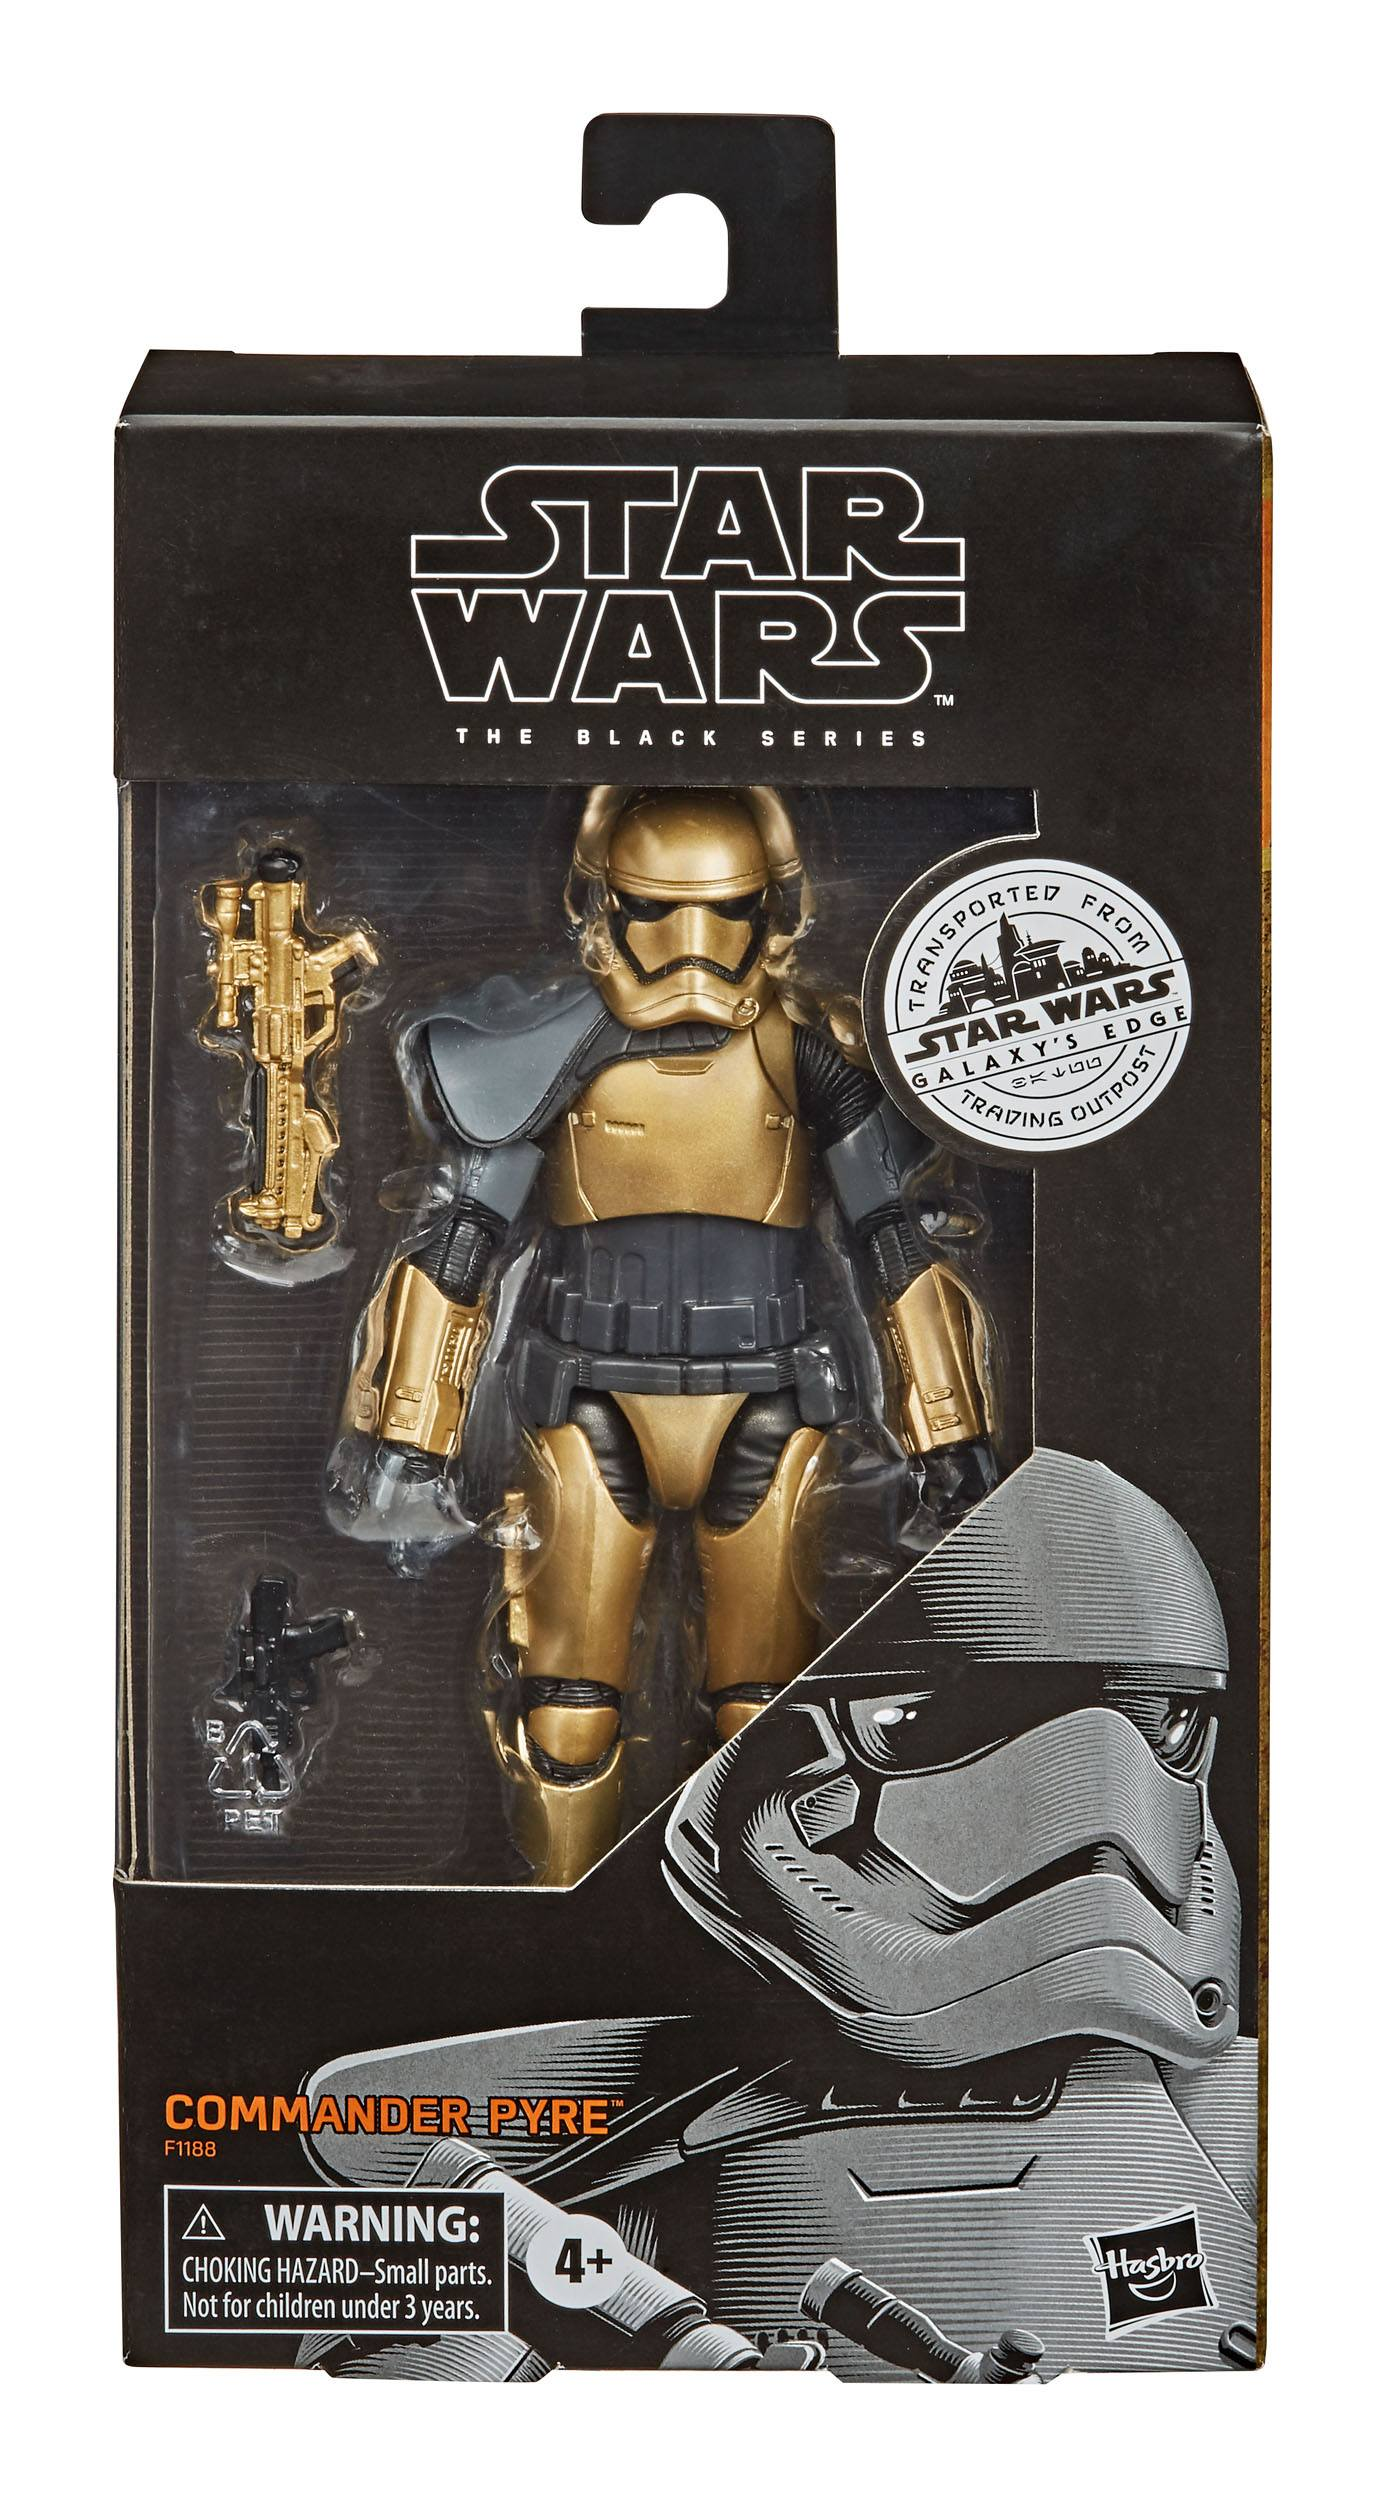 Star Wars Galaxy's Edge Black Series Commander Pyre 15 cm HASF1188 5010993773138